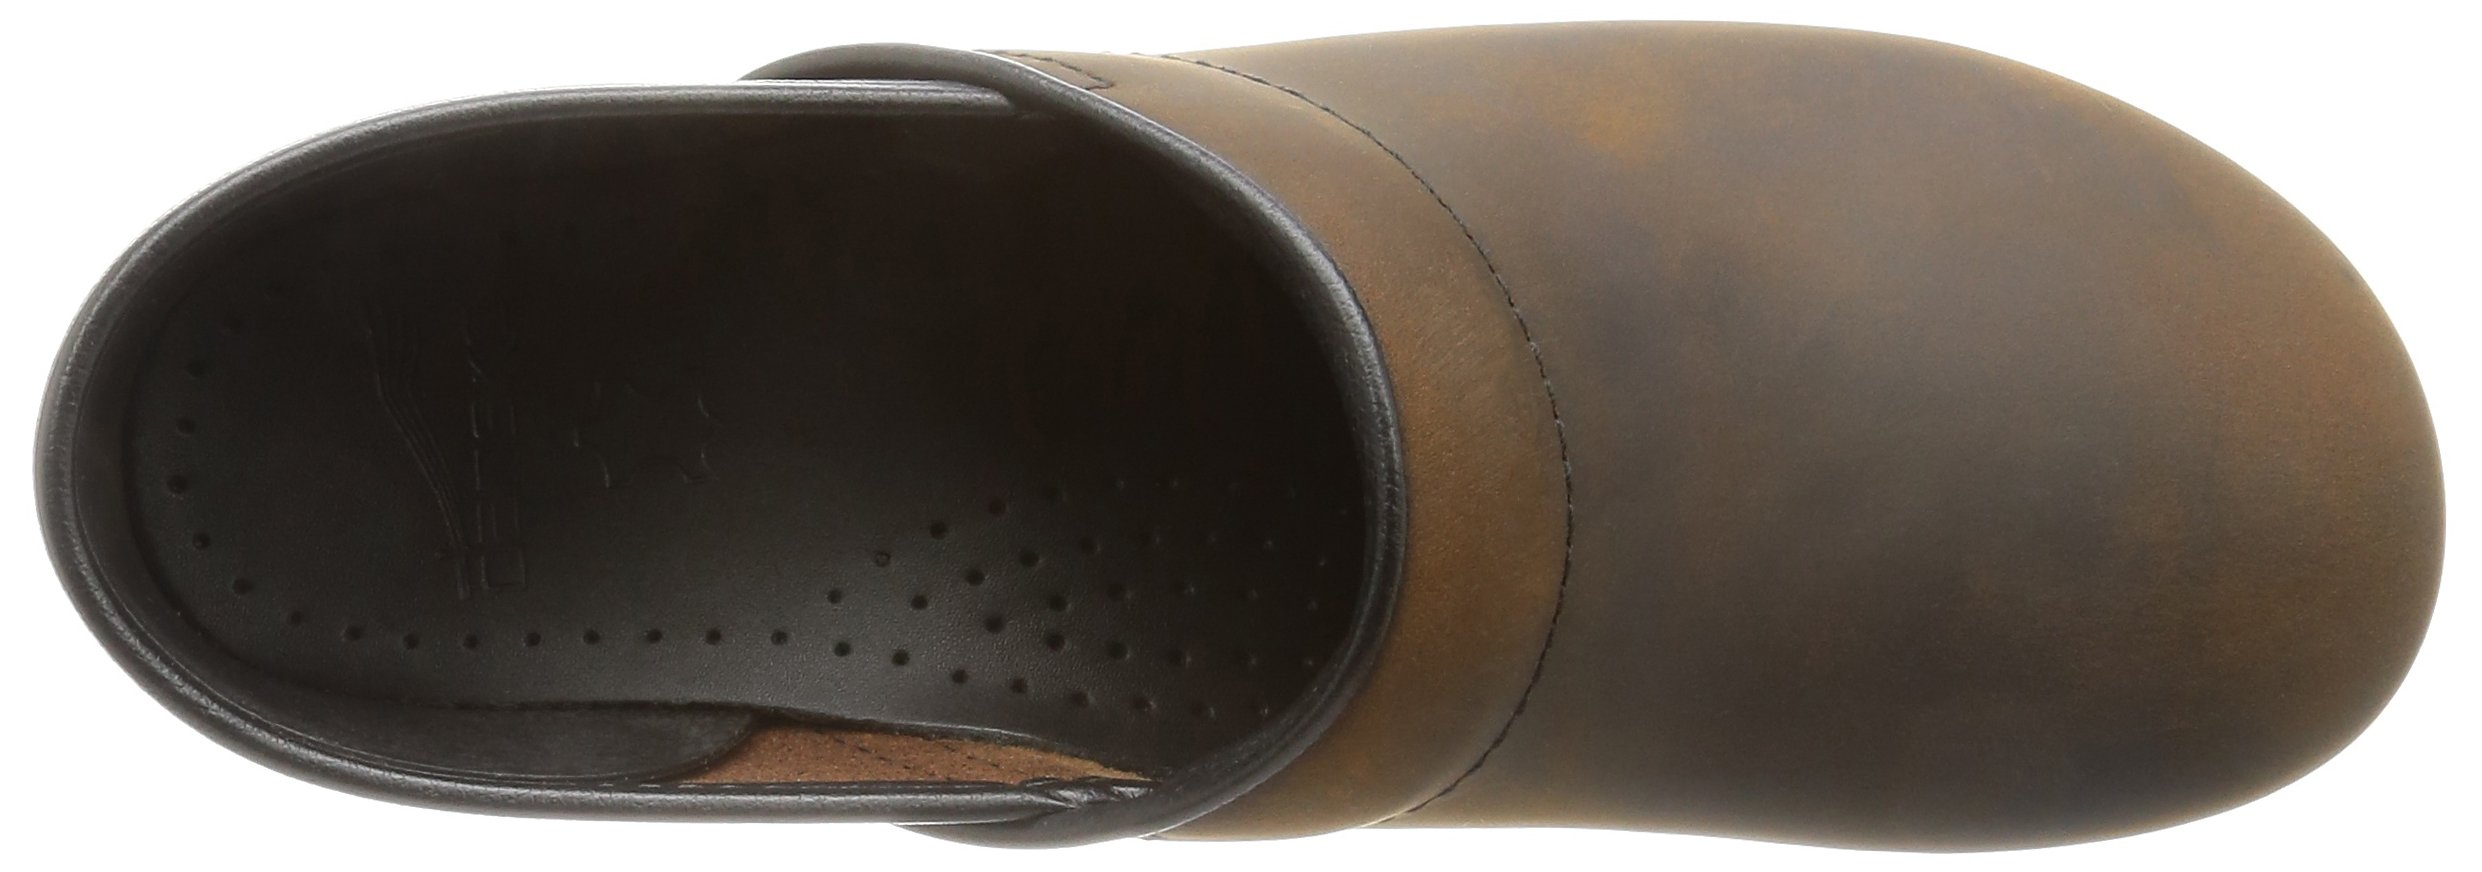 Dansko Women's Professional Oiled Leather Clog,Antique Brown/Black,35 EU / 4.5-5 B(M) US by Dansko (Image #8)